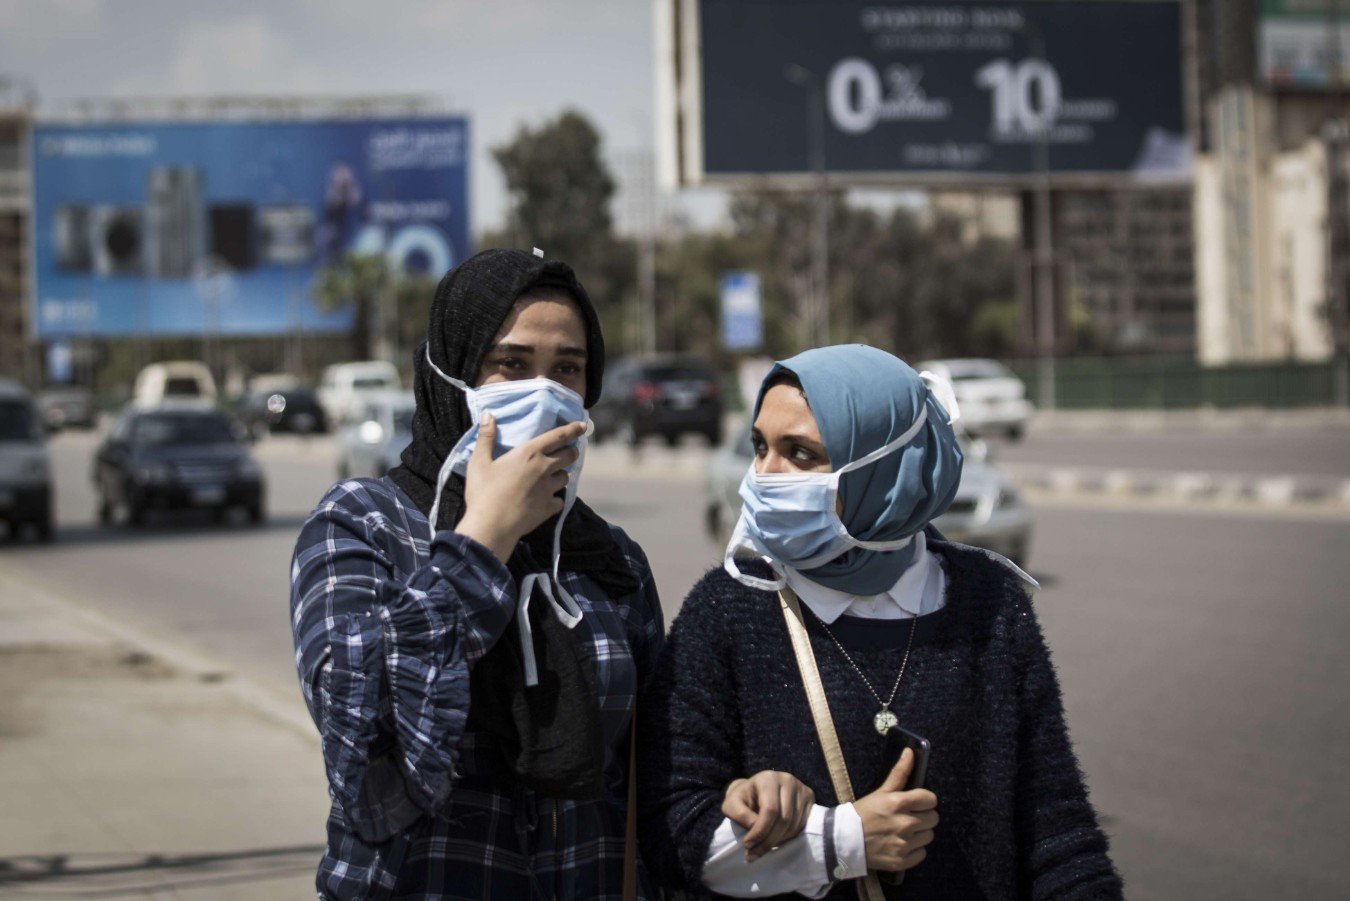 Women are seen wearing face masks as they walk over a bridge amid rising concerns over the Coronavirus (Covid-19) outbreak in Cairo, Egypt, April 1. (dpa)